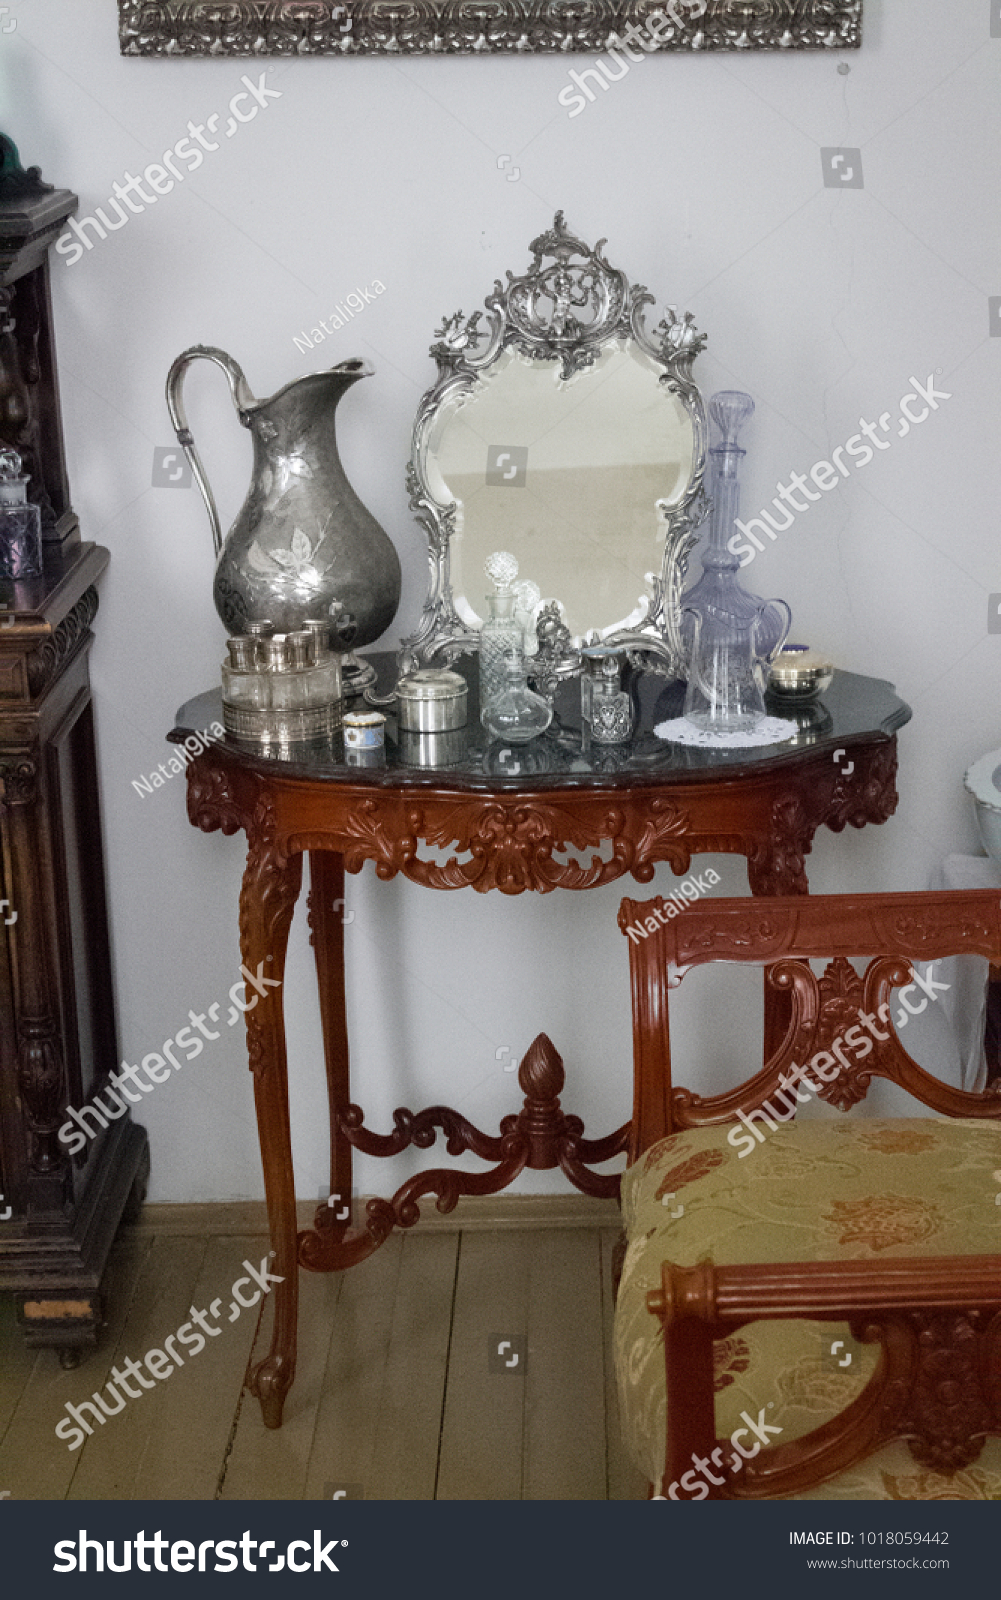 Antique antique ware and bottles of women's perfume from the 18th-19th century on an antique antique table in the interior. #1018059442